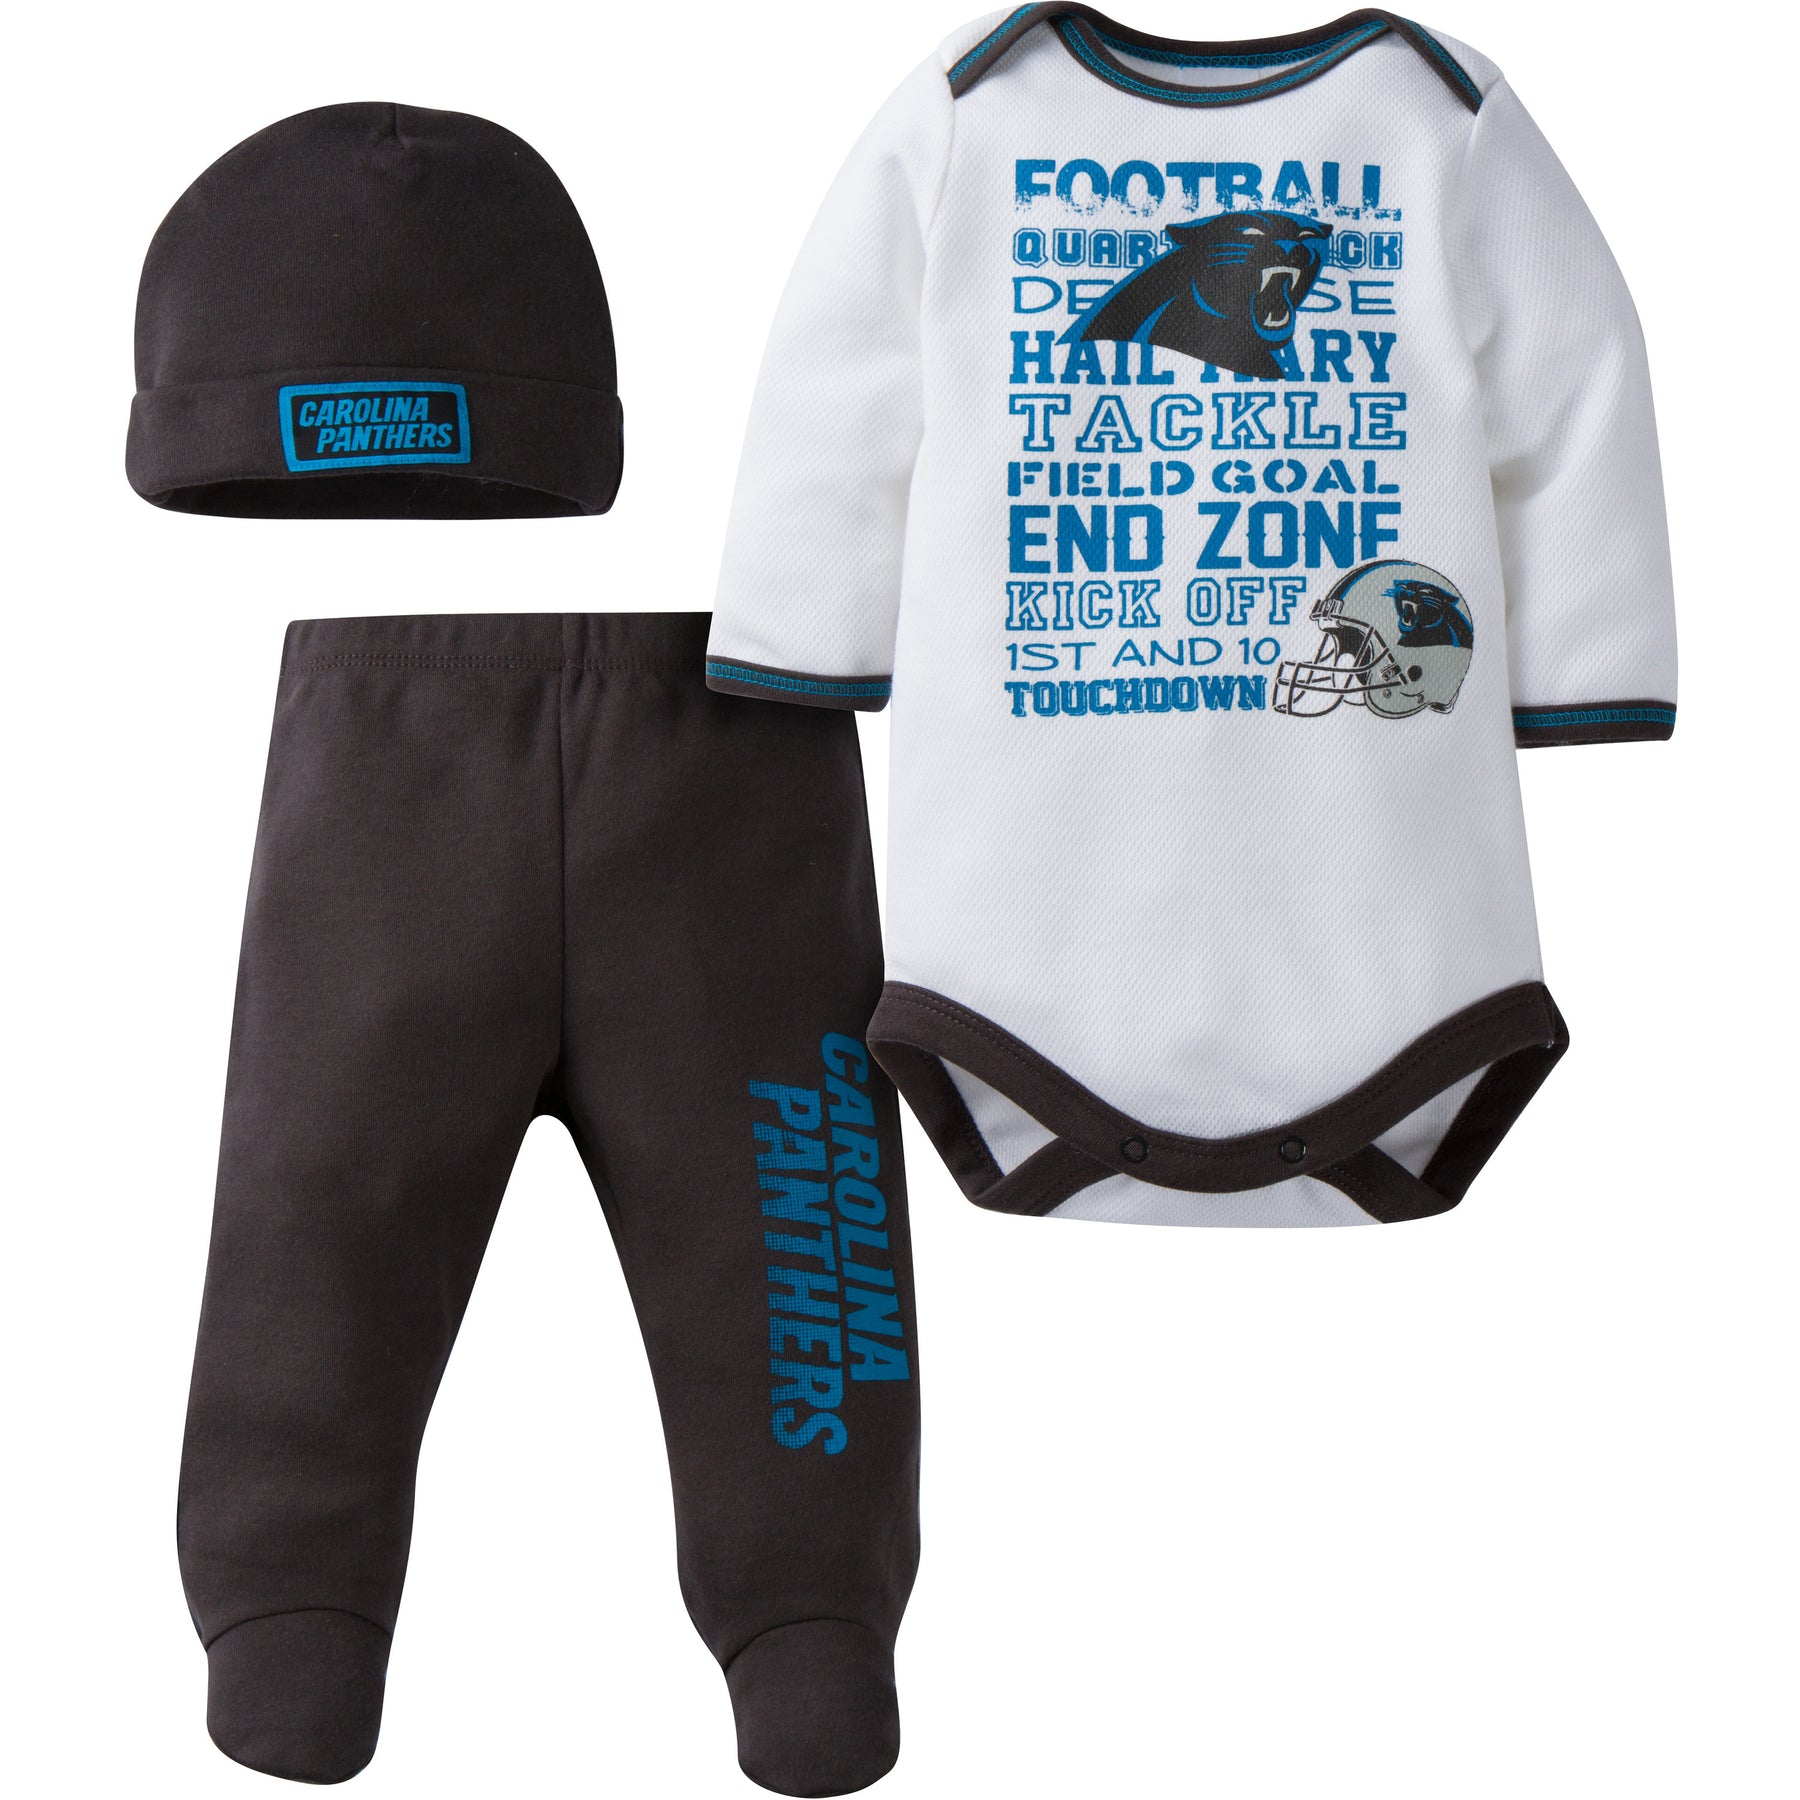 Panthers Baby 3 Piece Outfit – babyfans